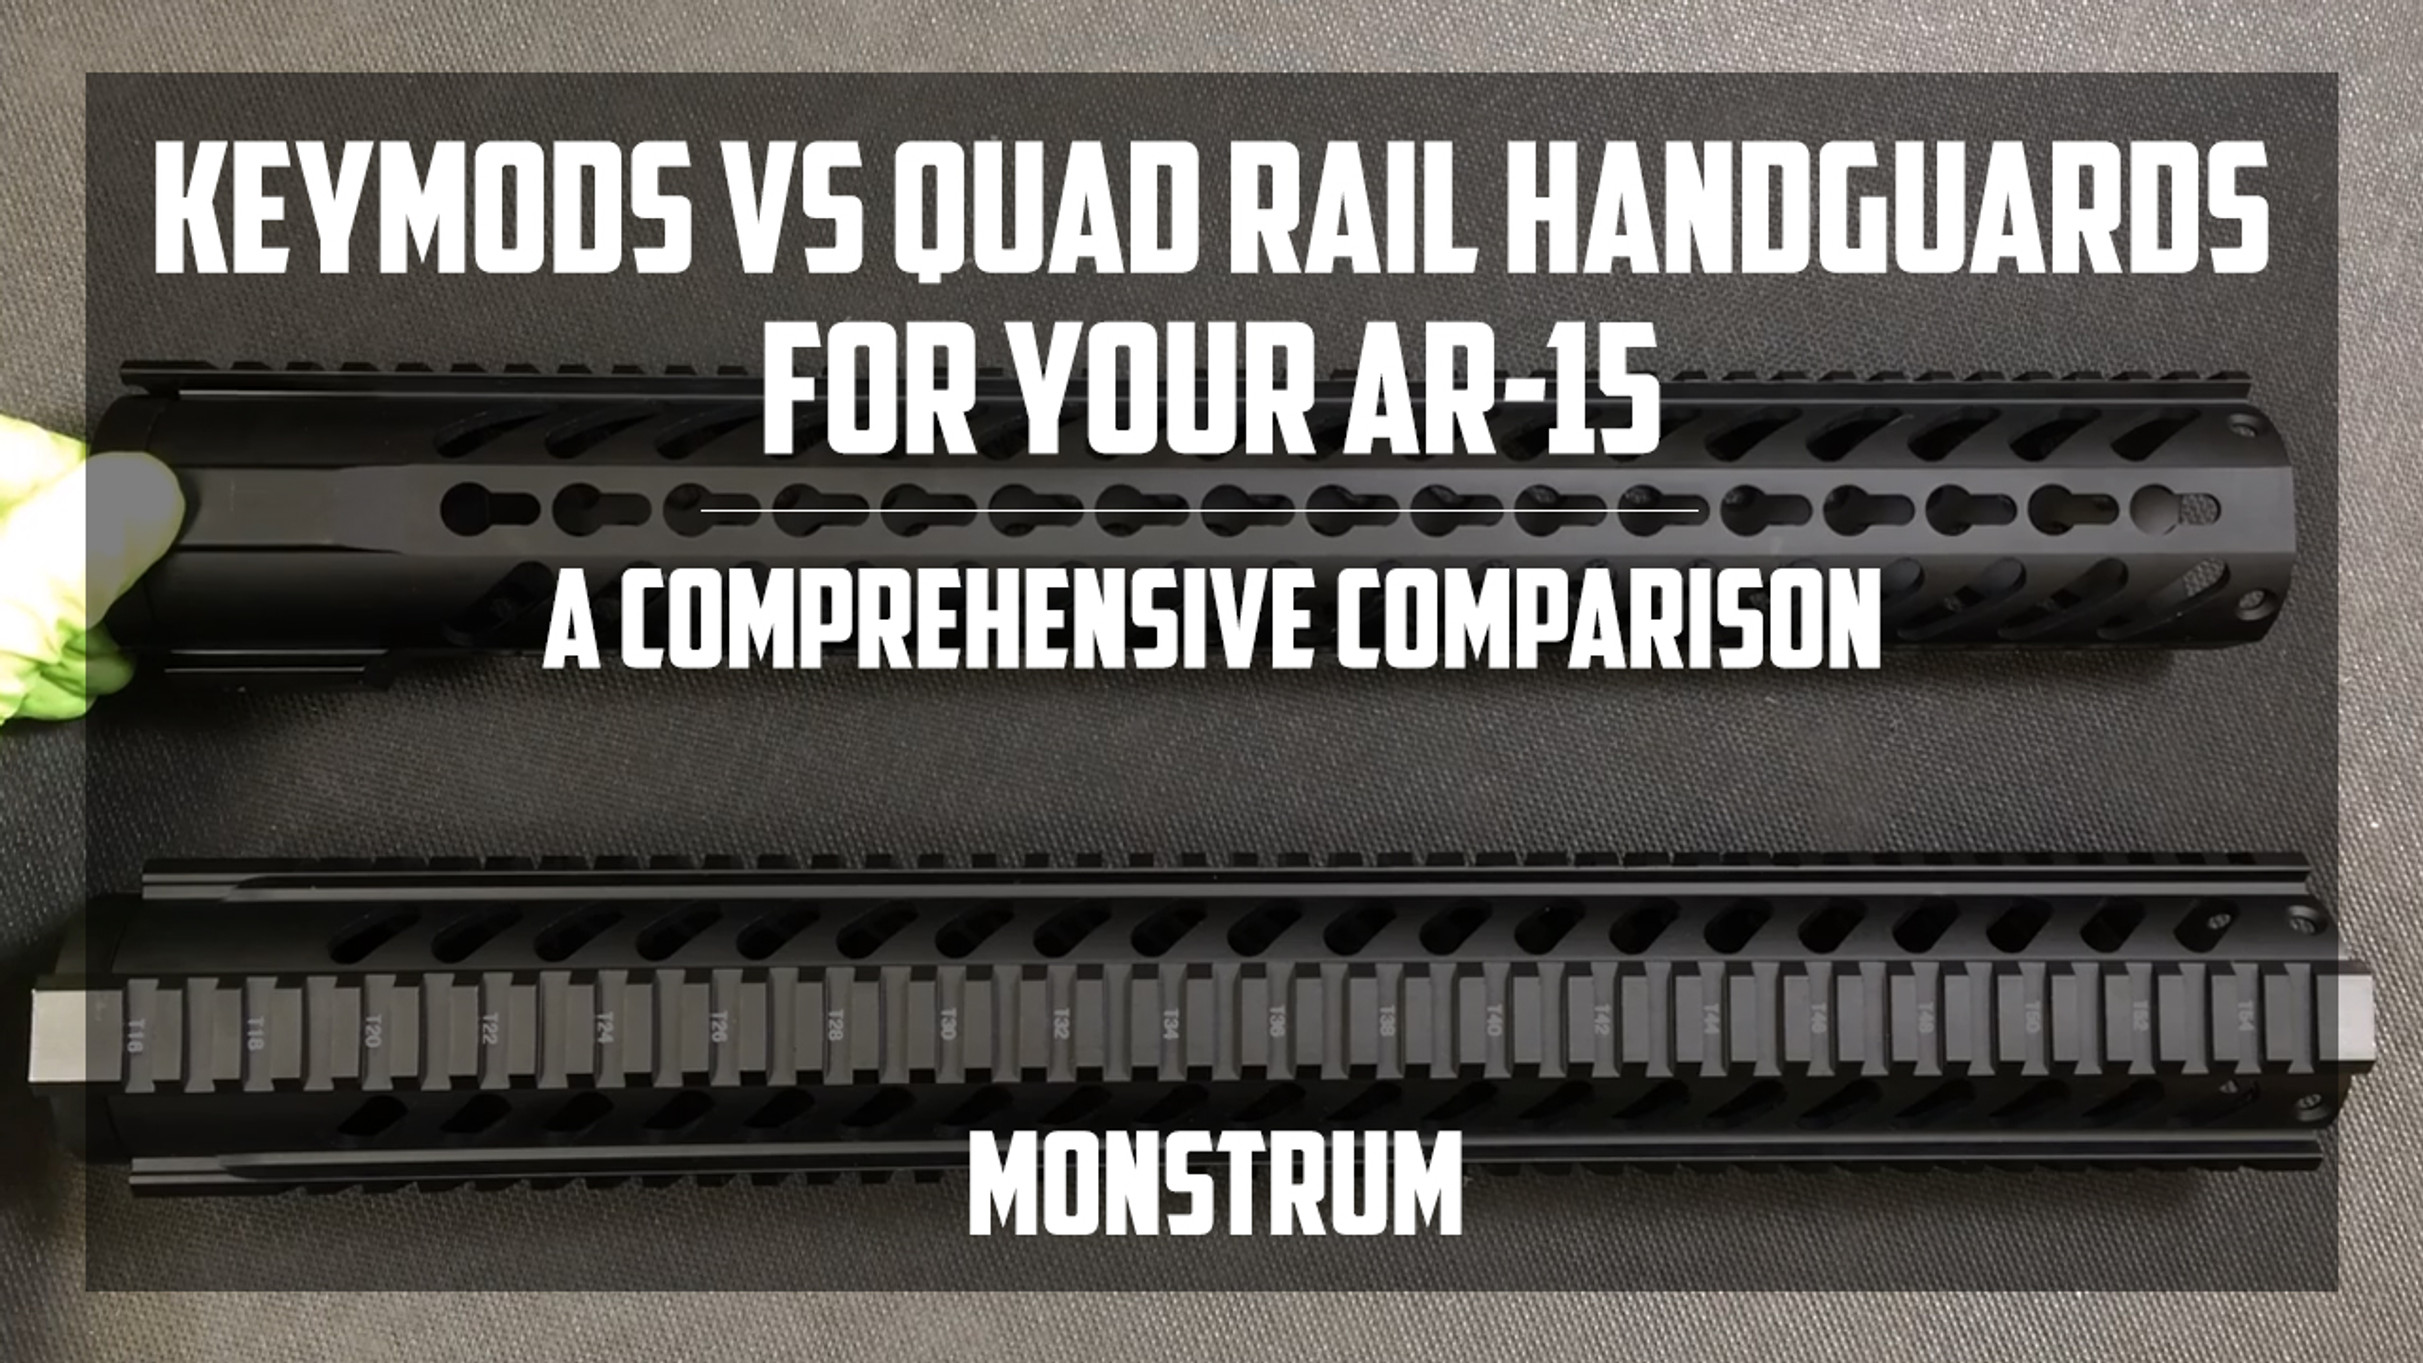 Keymod vs. the Traditional AR-15 Quad Rail